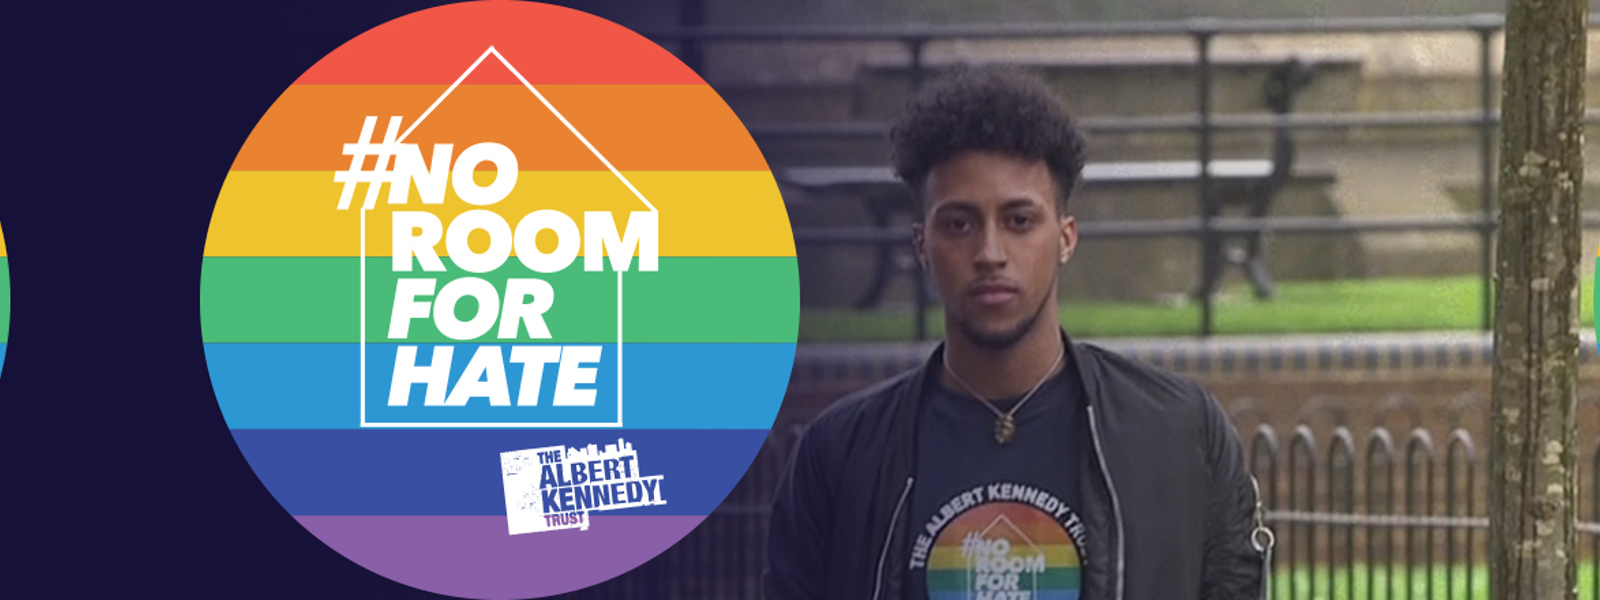 AKT Launches No Room For Hate Campaign